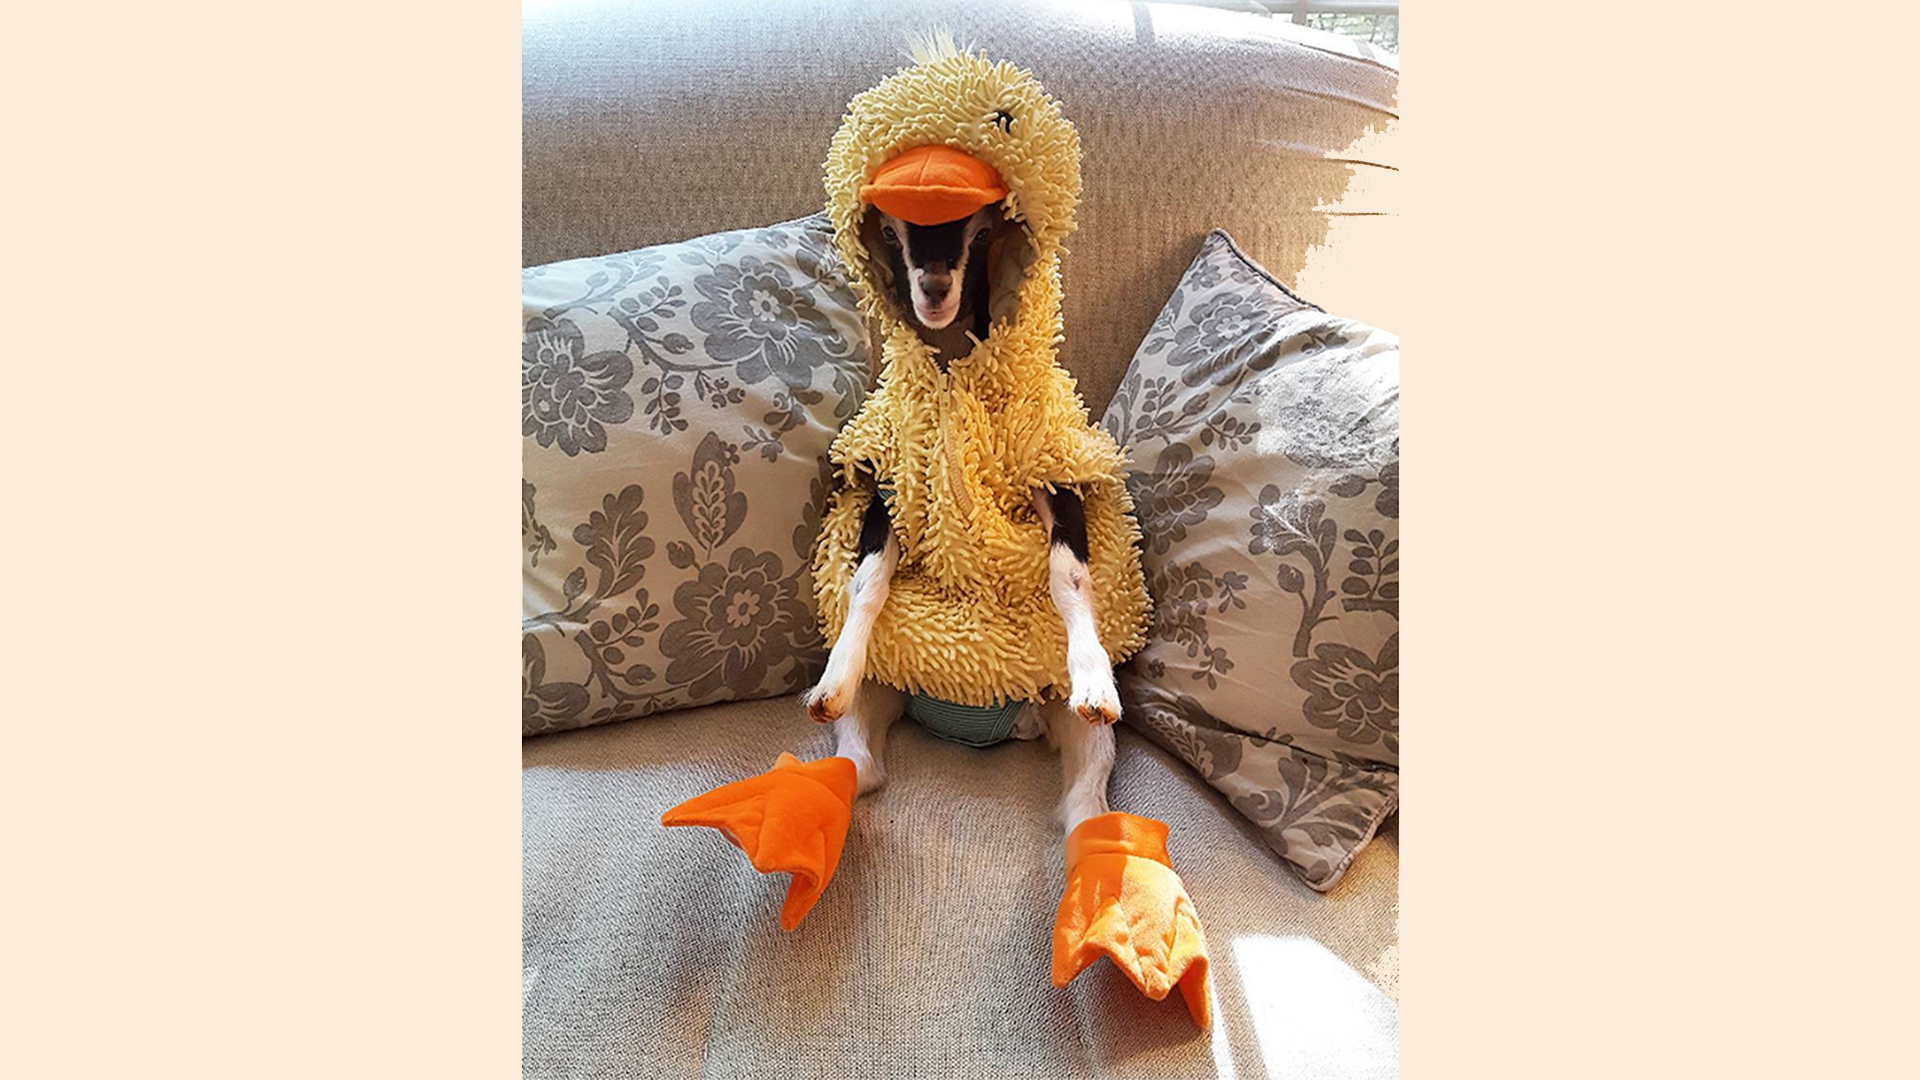 Goat With Anxiety Only Calms Down When In Duck Costume - Rescue goat suffers anxiety calms duck costume